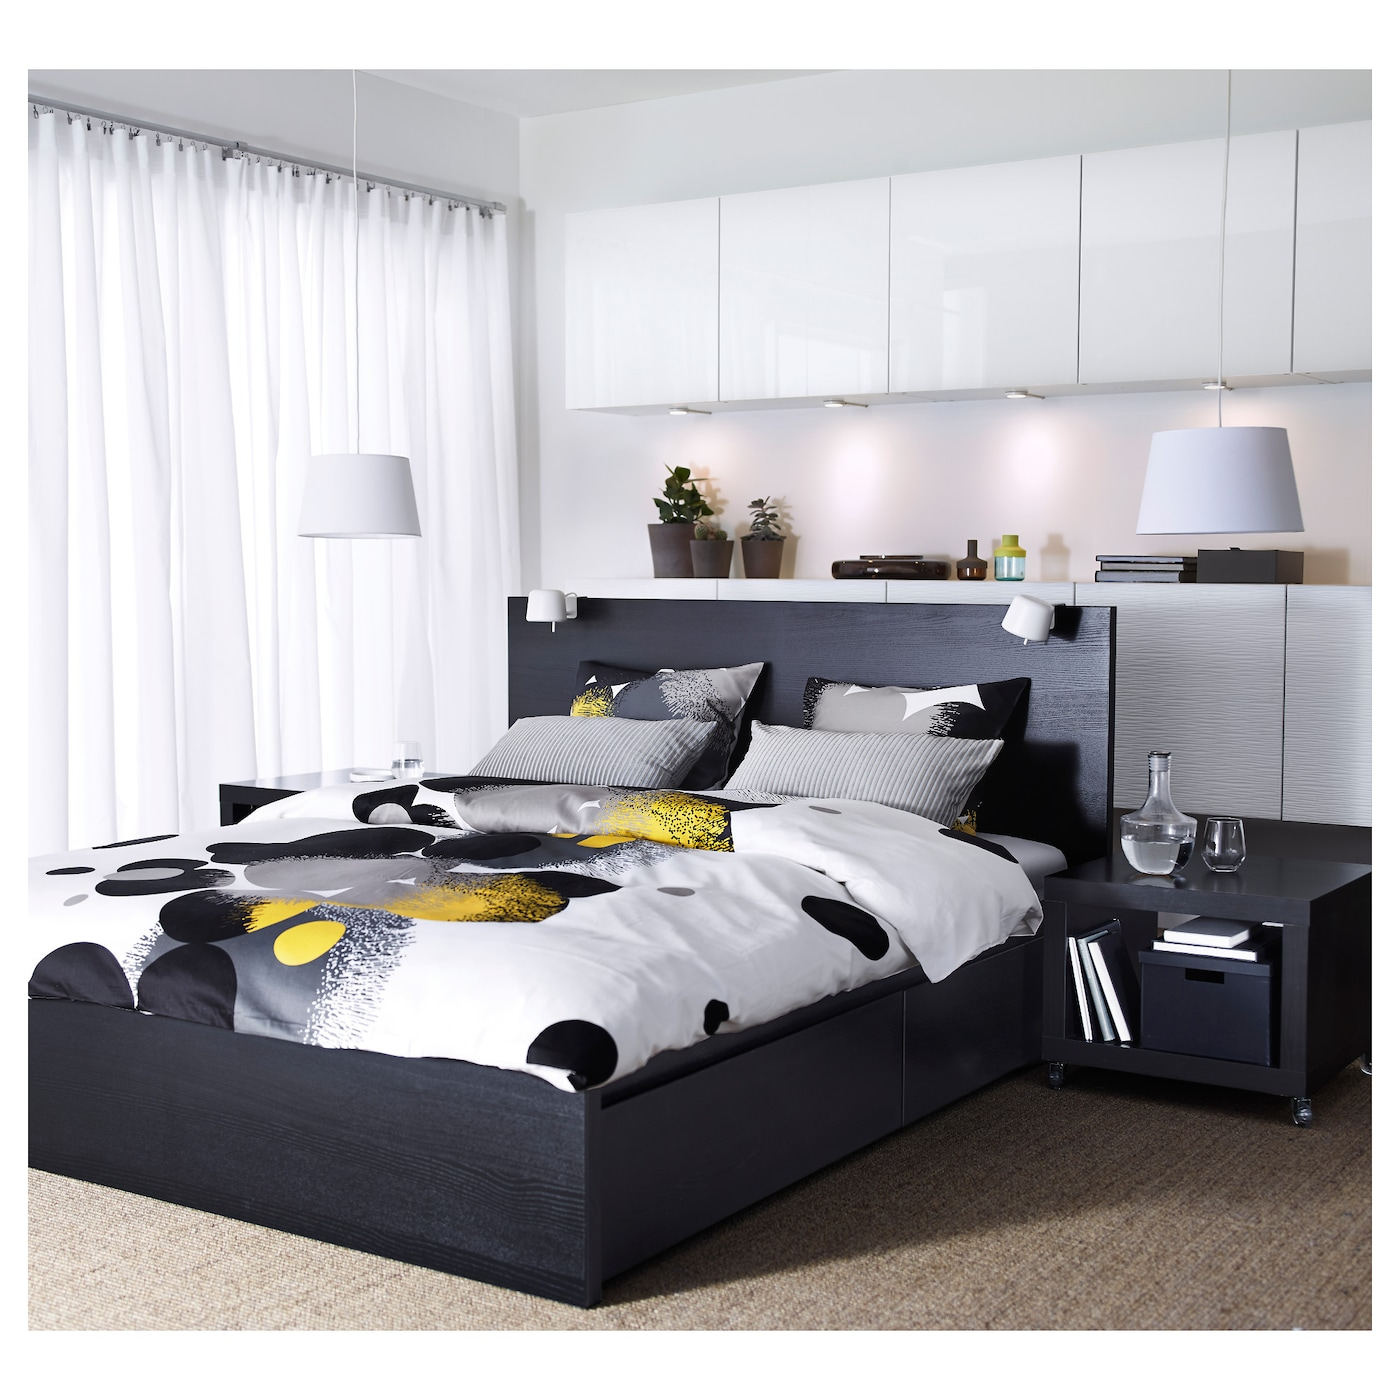 IKEA MALM bed frame with 4 storage boxes Real wood veneer will make this bed age gracefully.